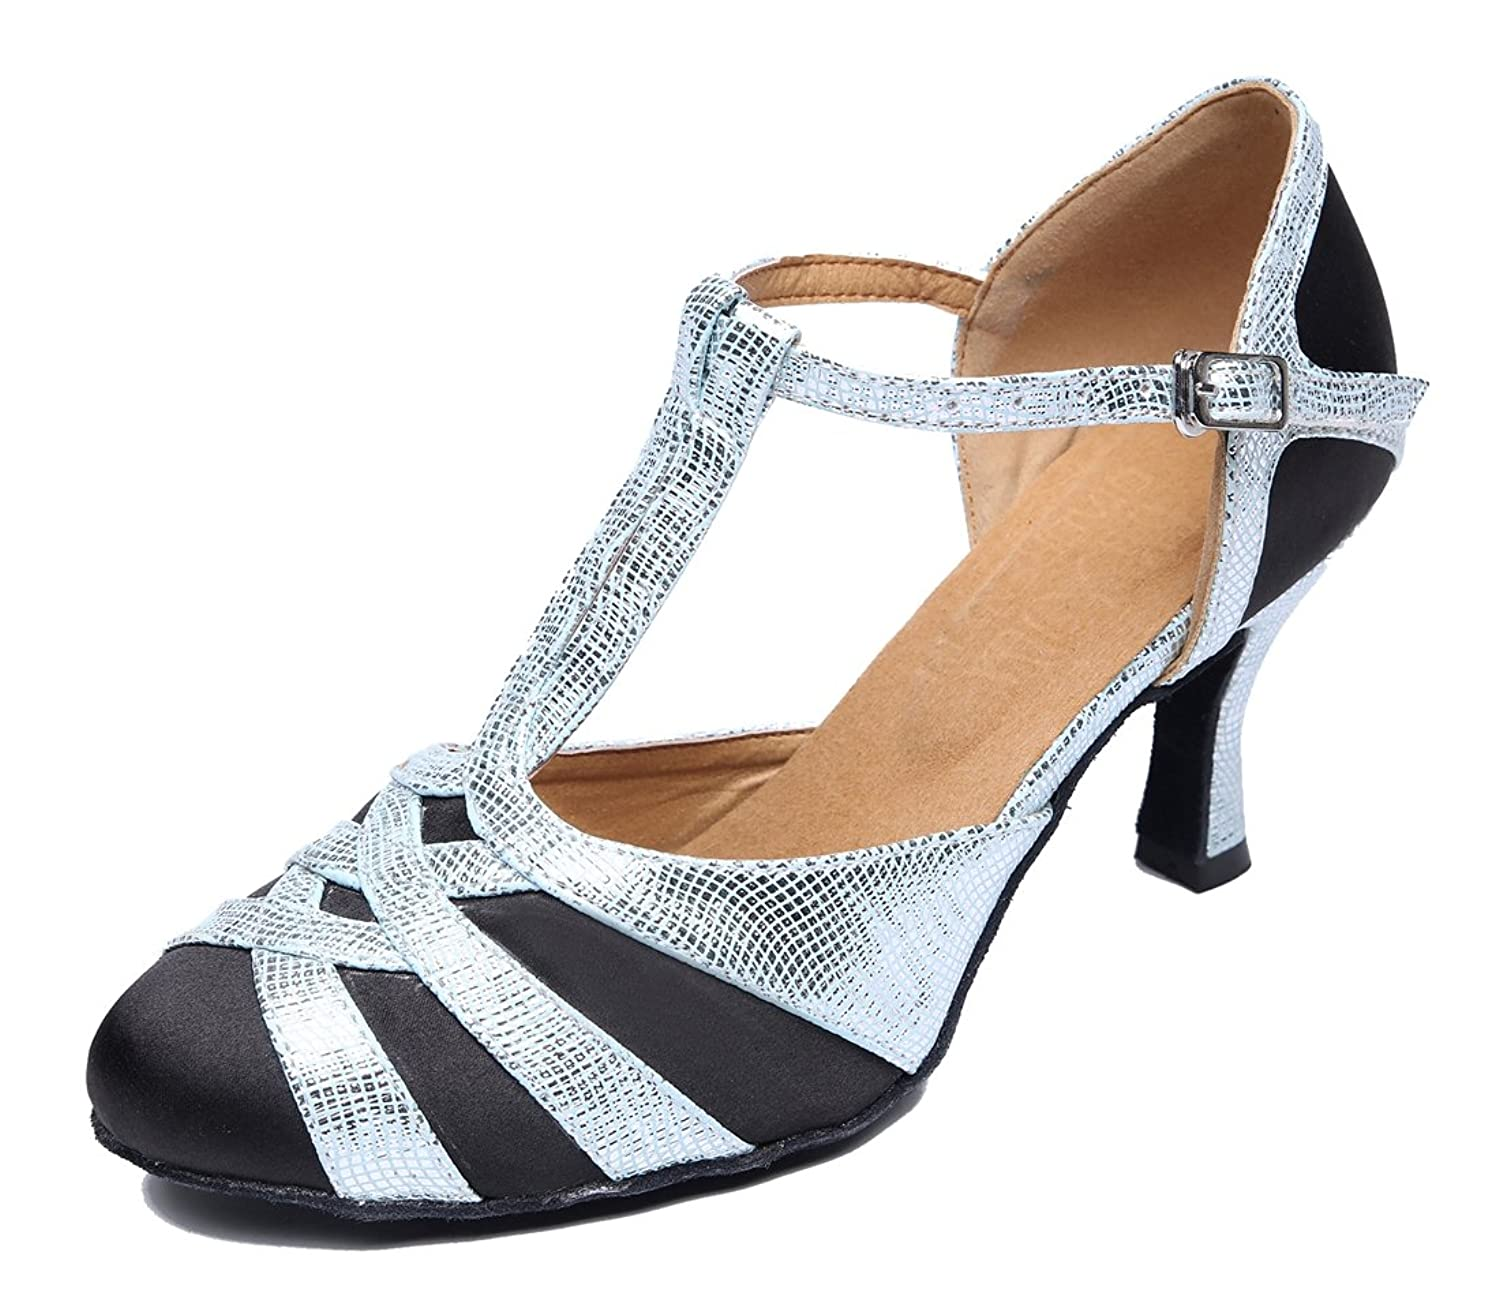 24fd1f4d1330 80%OFF TDA Women's Fashion Closed Toe T-strap Glitter Satin Ballroom ...